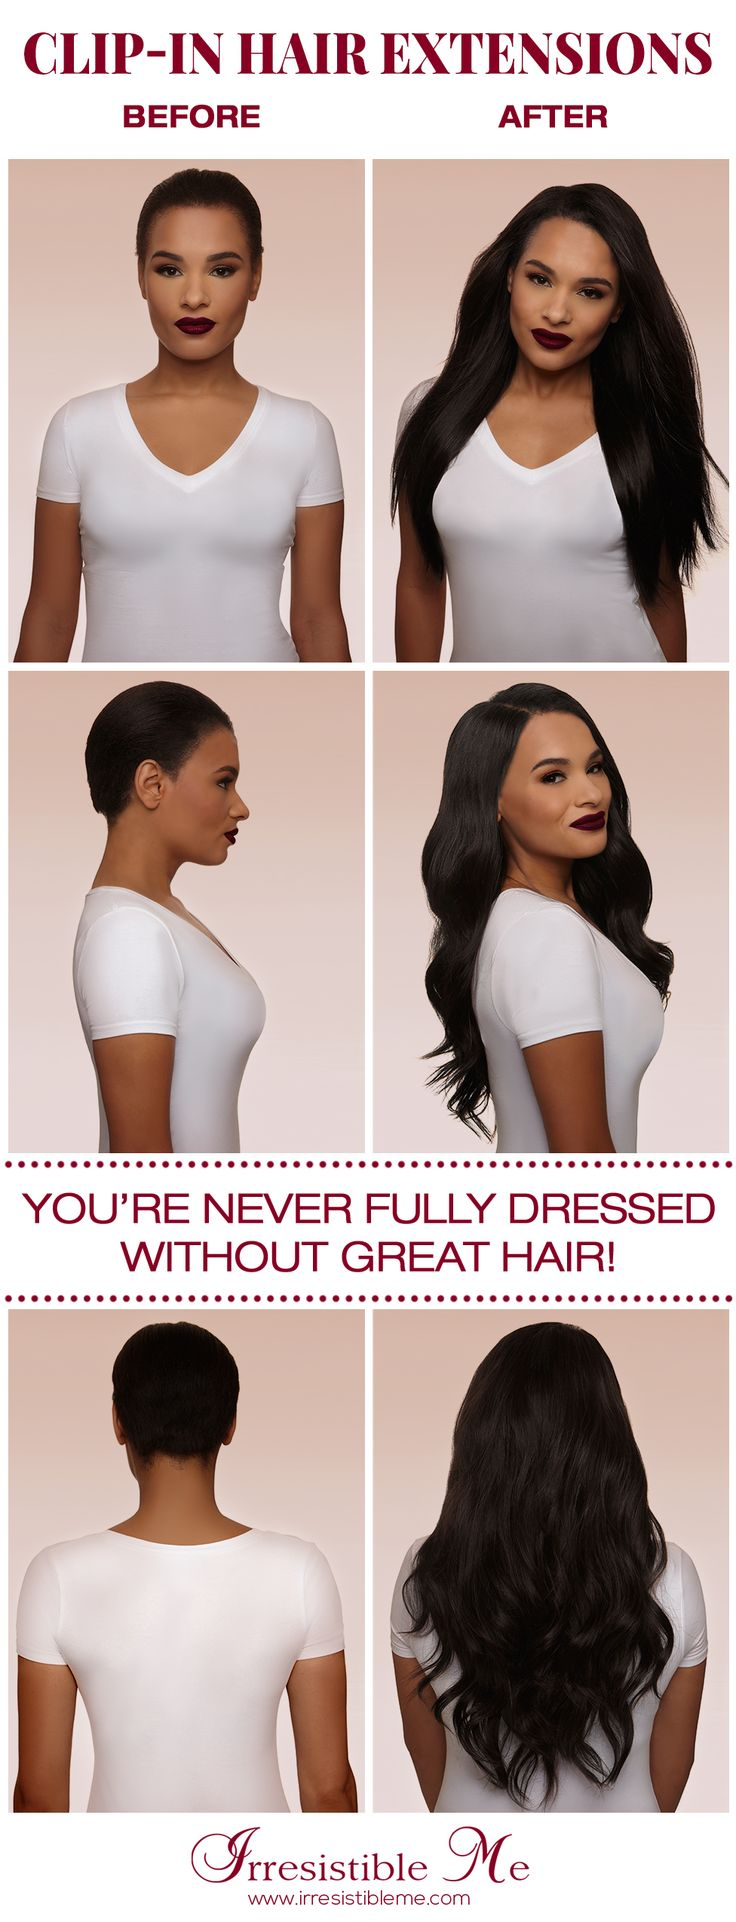 Get long hair in less than 5 minutes with  Irresistible Me 100% human Remy clip-in hair extensions. The before and after change is totally awesome and nobody will know you're wearing hair extensions. Can be cut, dyed and heat styled. Worldwide delivery, free exchanges and returns. Click for more colors and lengths. Perfect for brides too. Enjoy 20% off on first order!